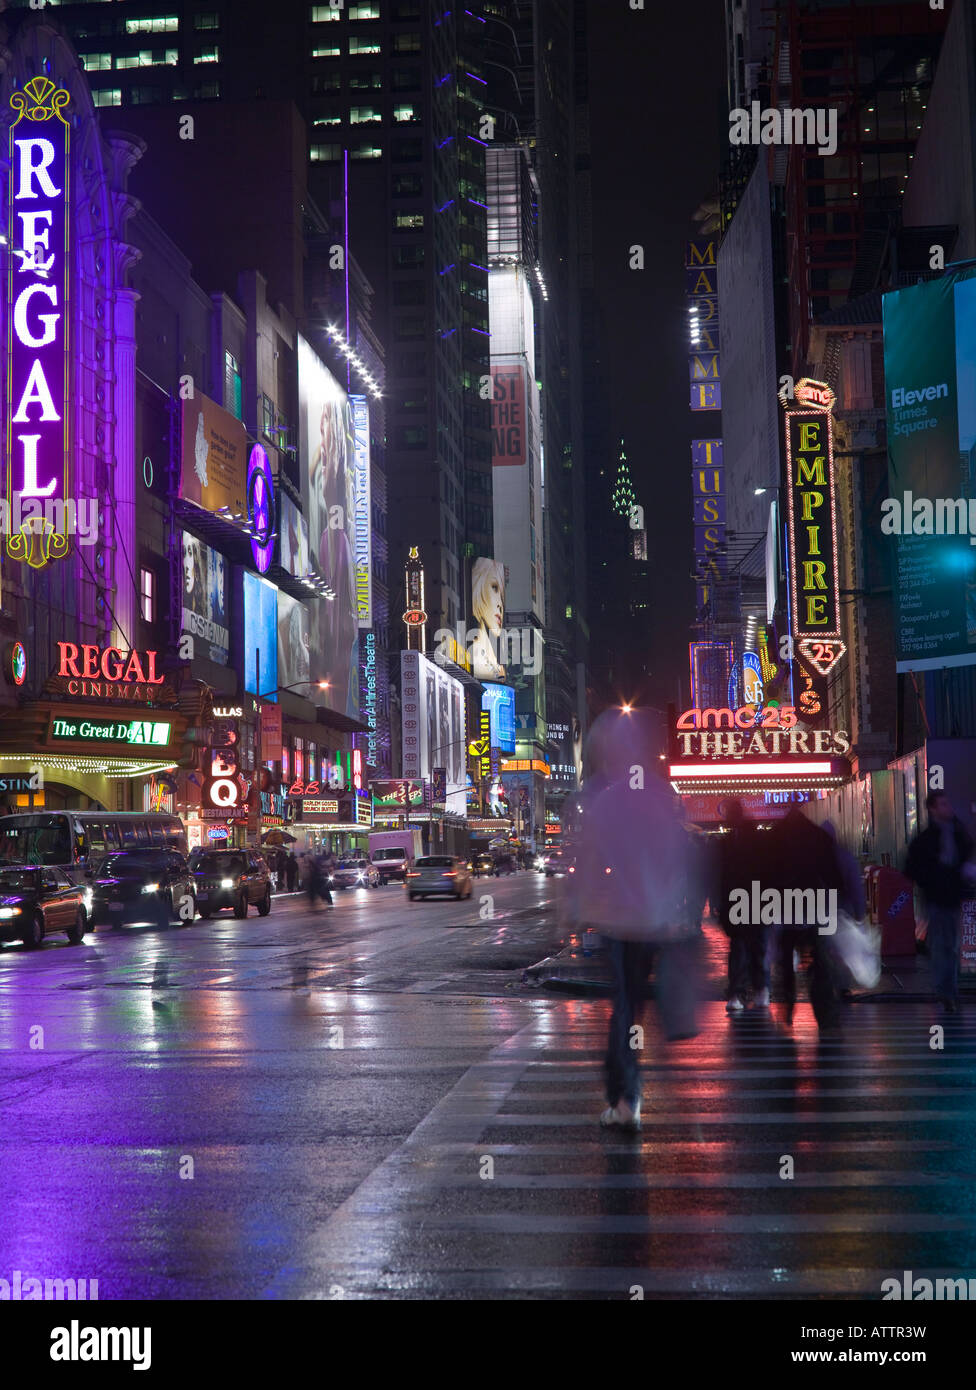 42nd street times square area new york usa at night stock photo 16390236 alamy. Black Bedroom Furniture Sets. Home Design Ideas